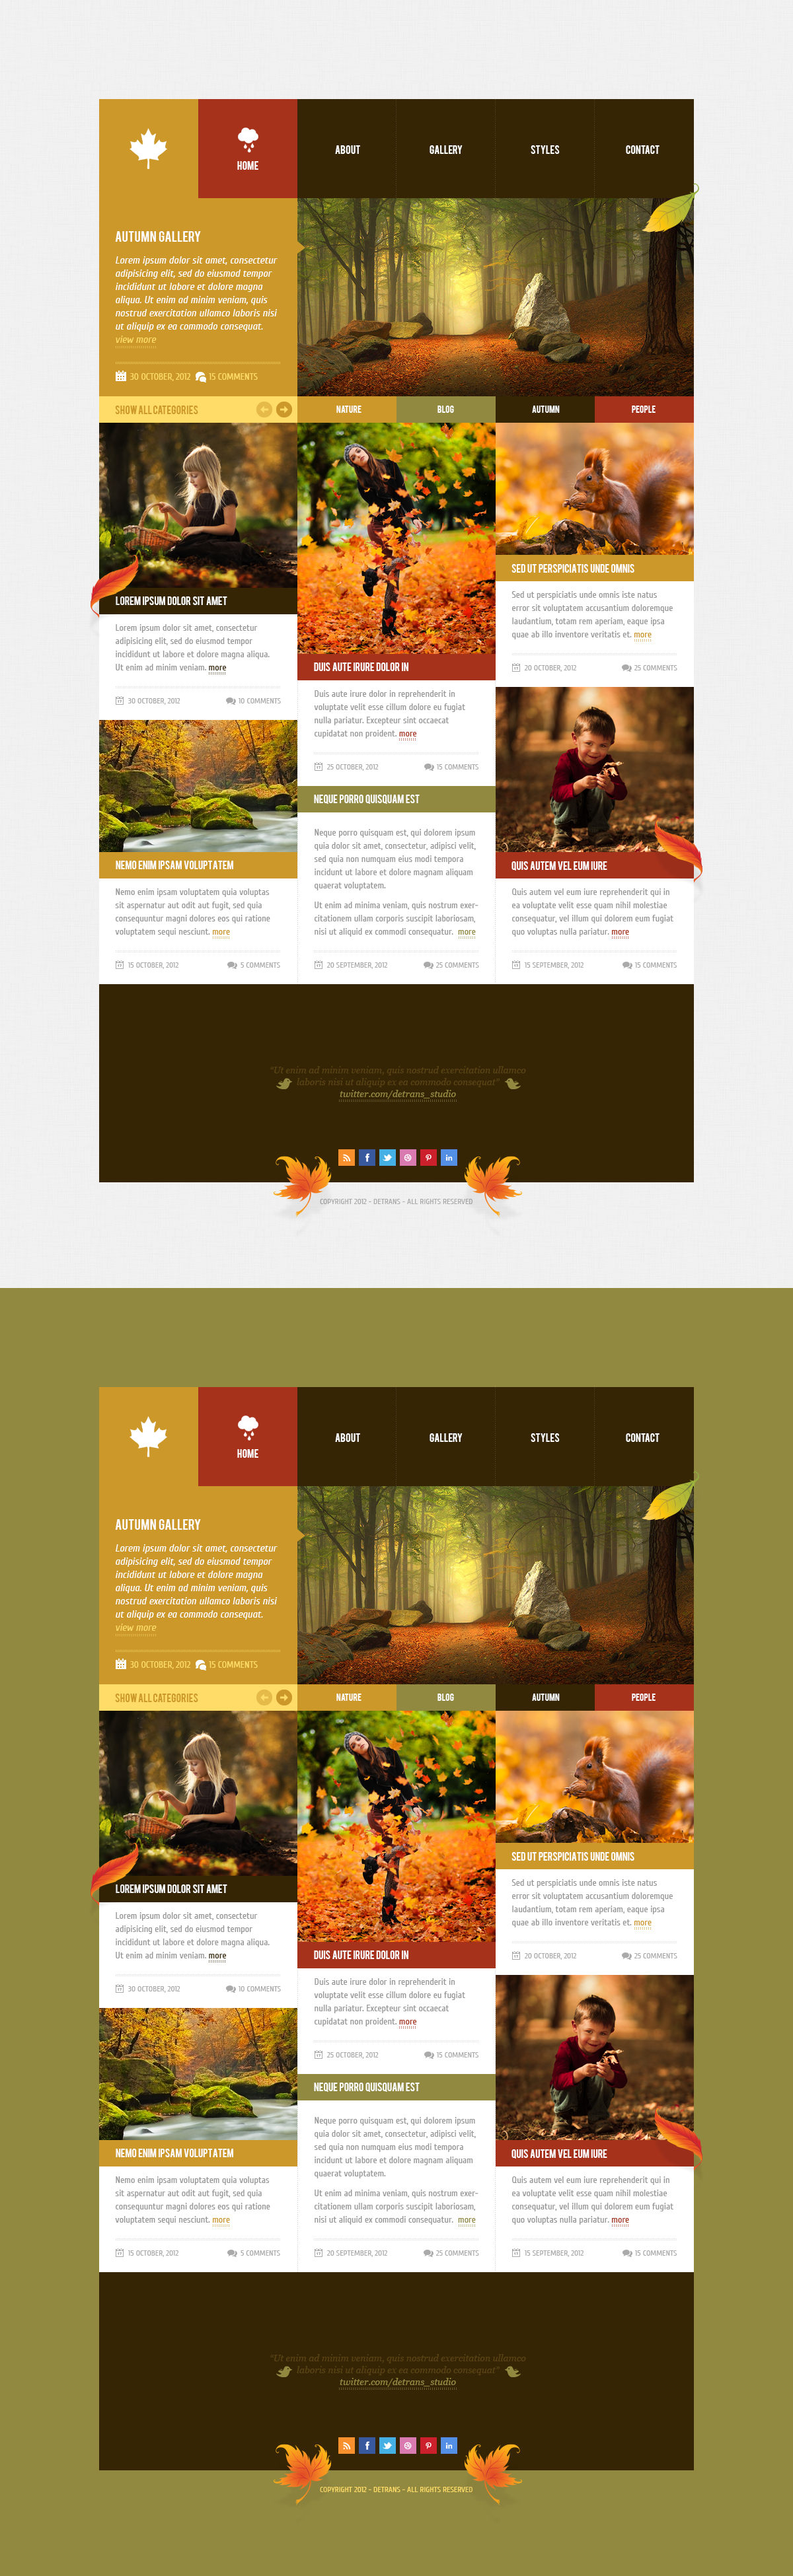 Autumn - WordPress Theme by detrans